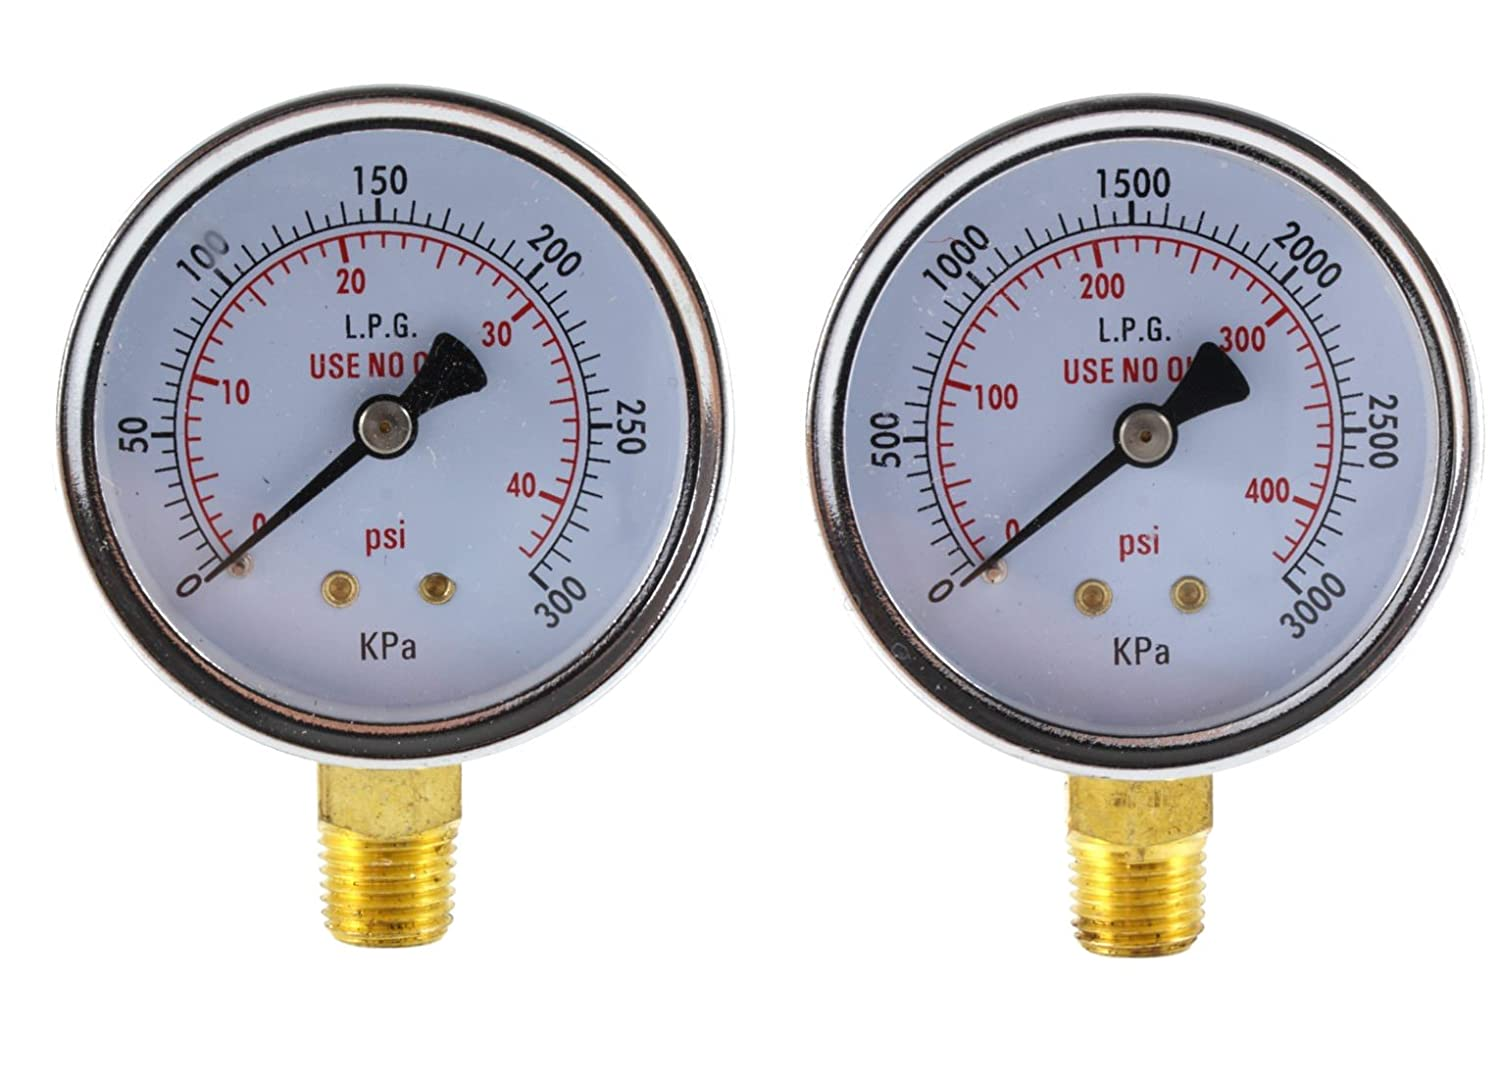 High Pressure Gauge for Propane Regulator 0-400 psi - 2.5 inches NUT